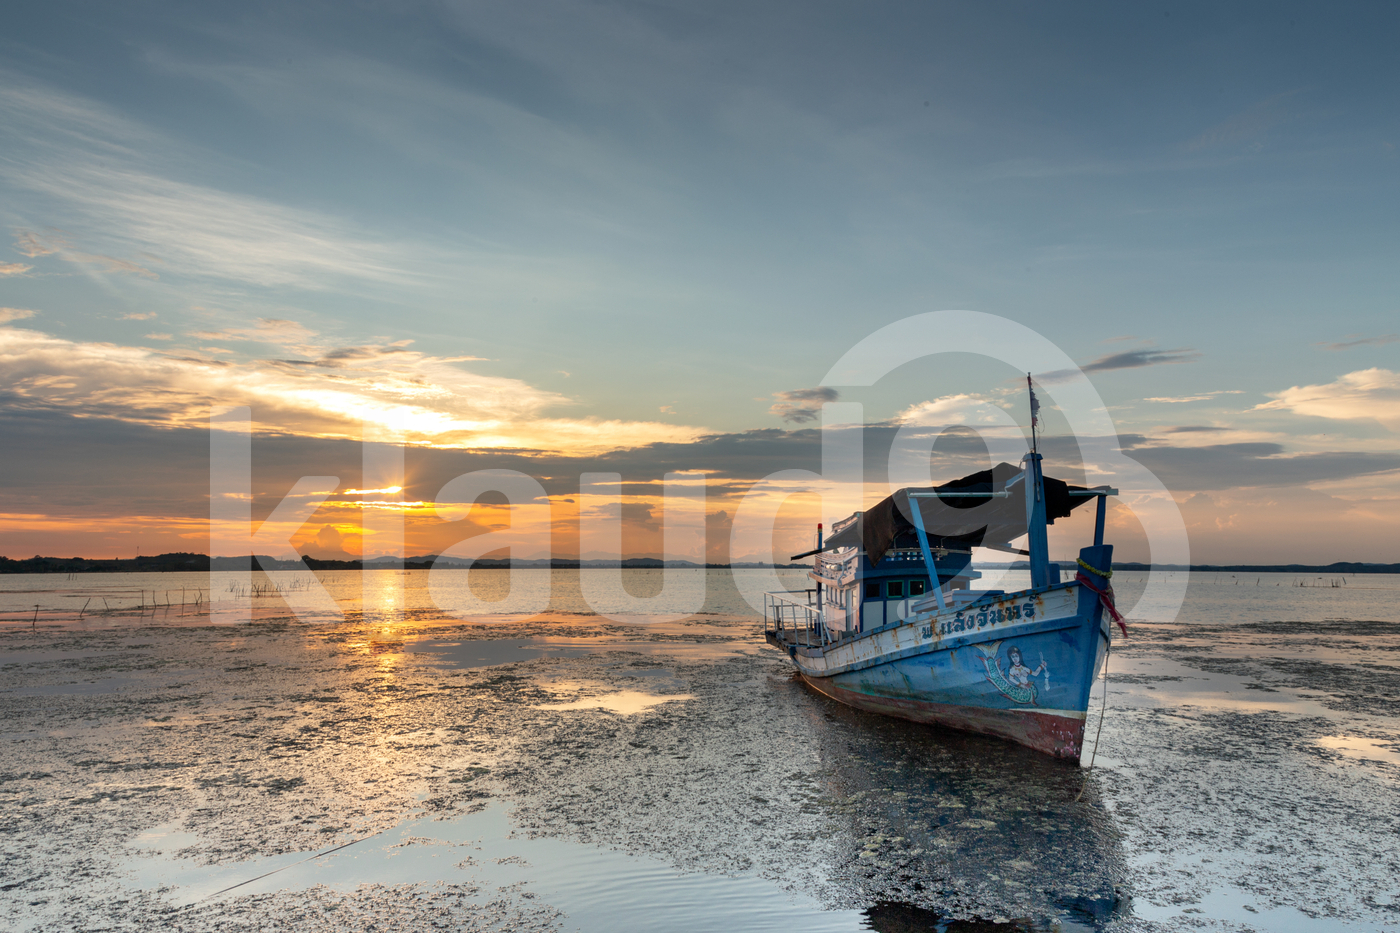 Abandoned fishing boat by the lake at sunset